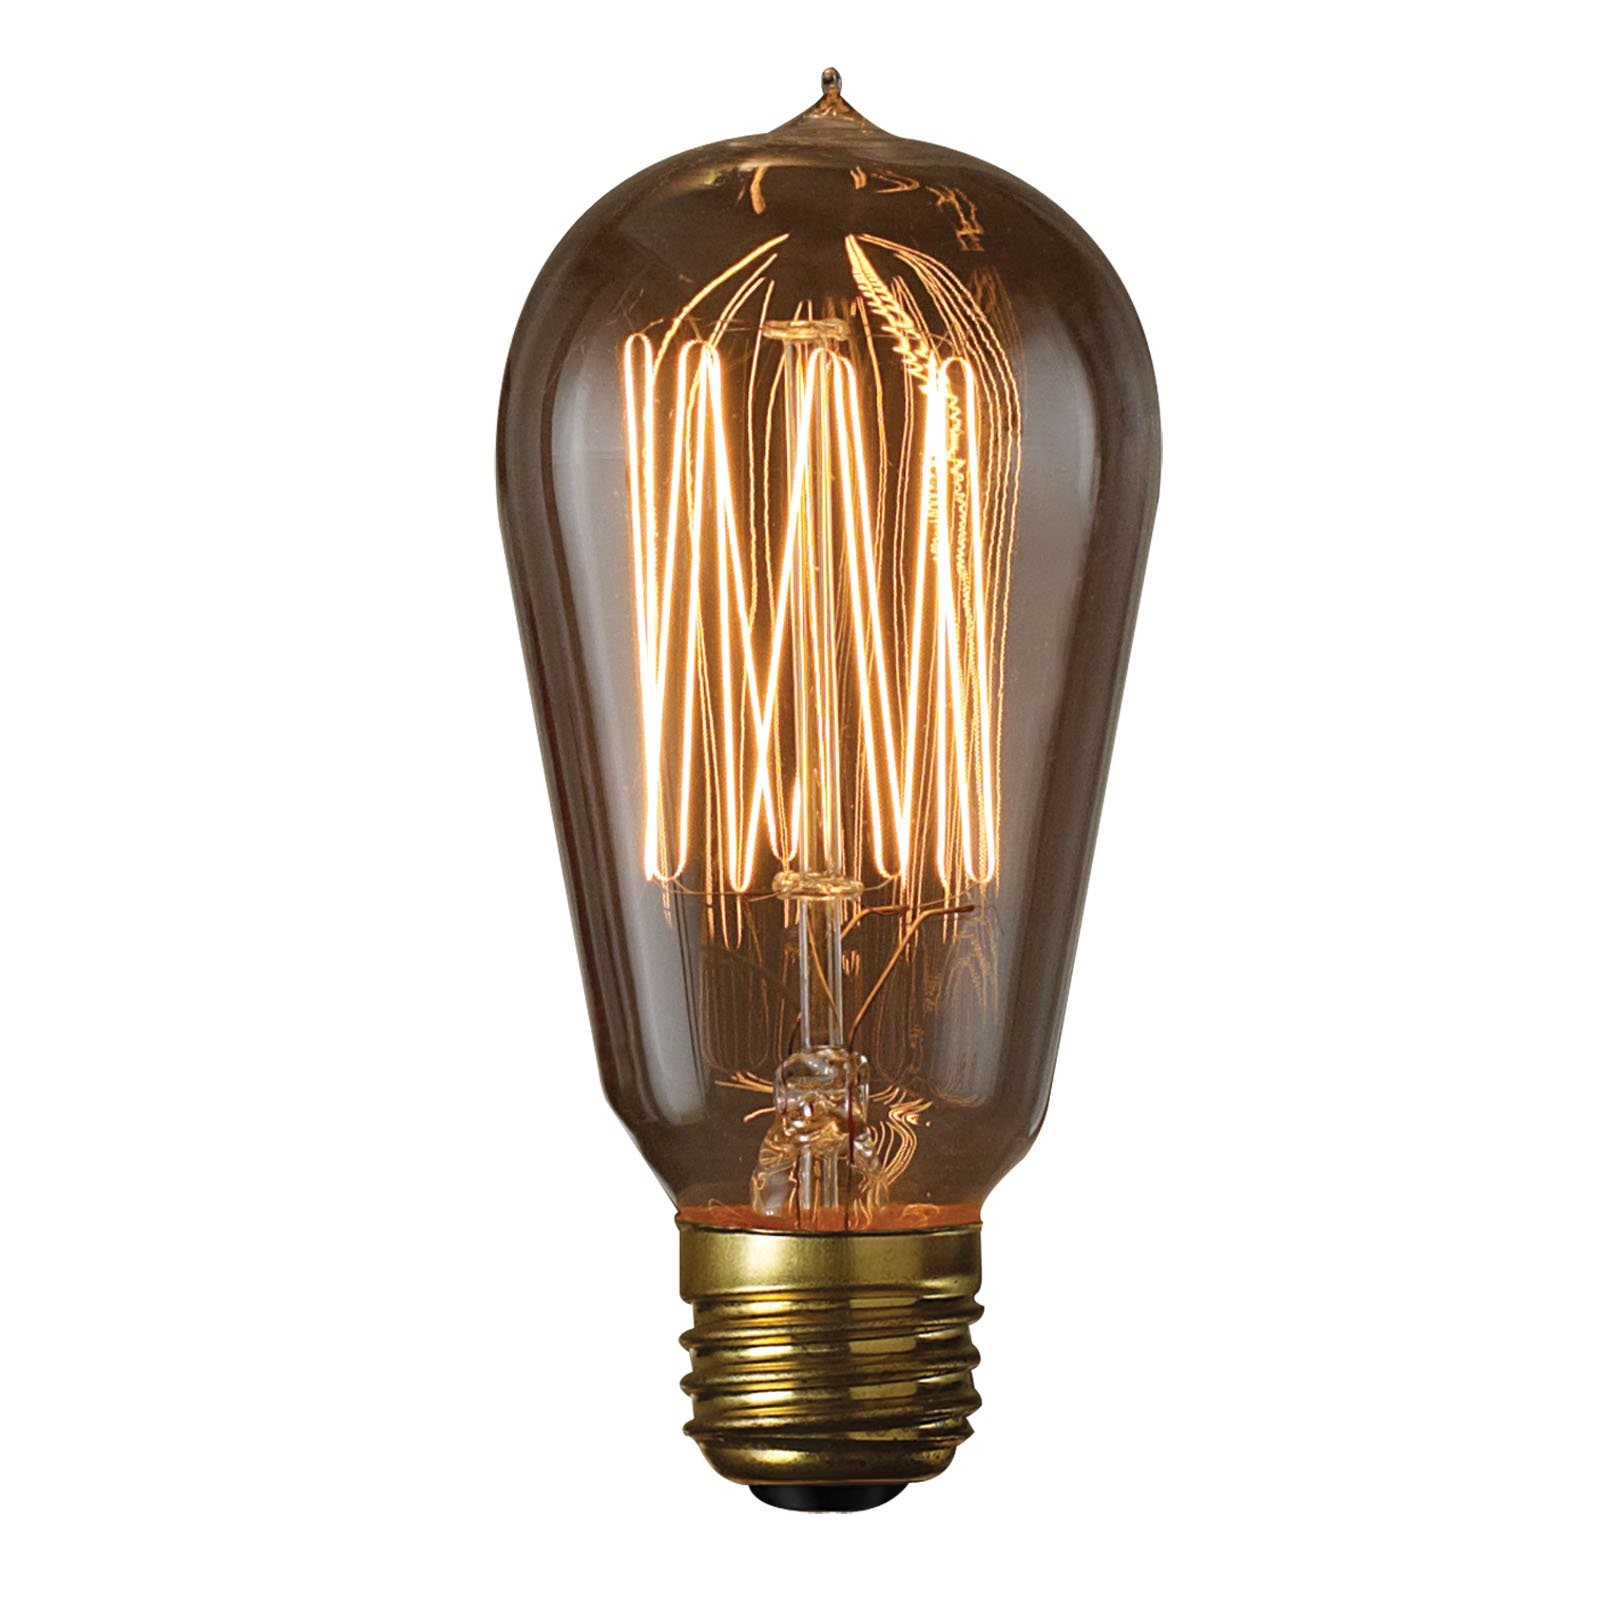 Bulbrite Incandescent 1910 Thread Filament Light Bulb, Warm White, 60W, 1 Ct